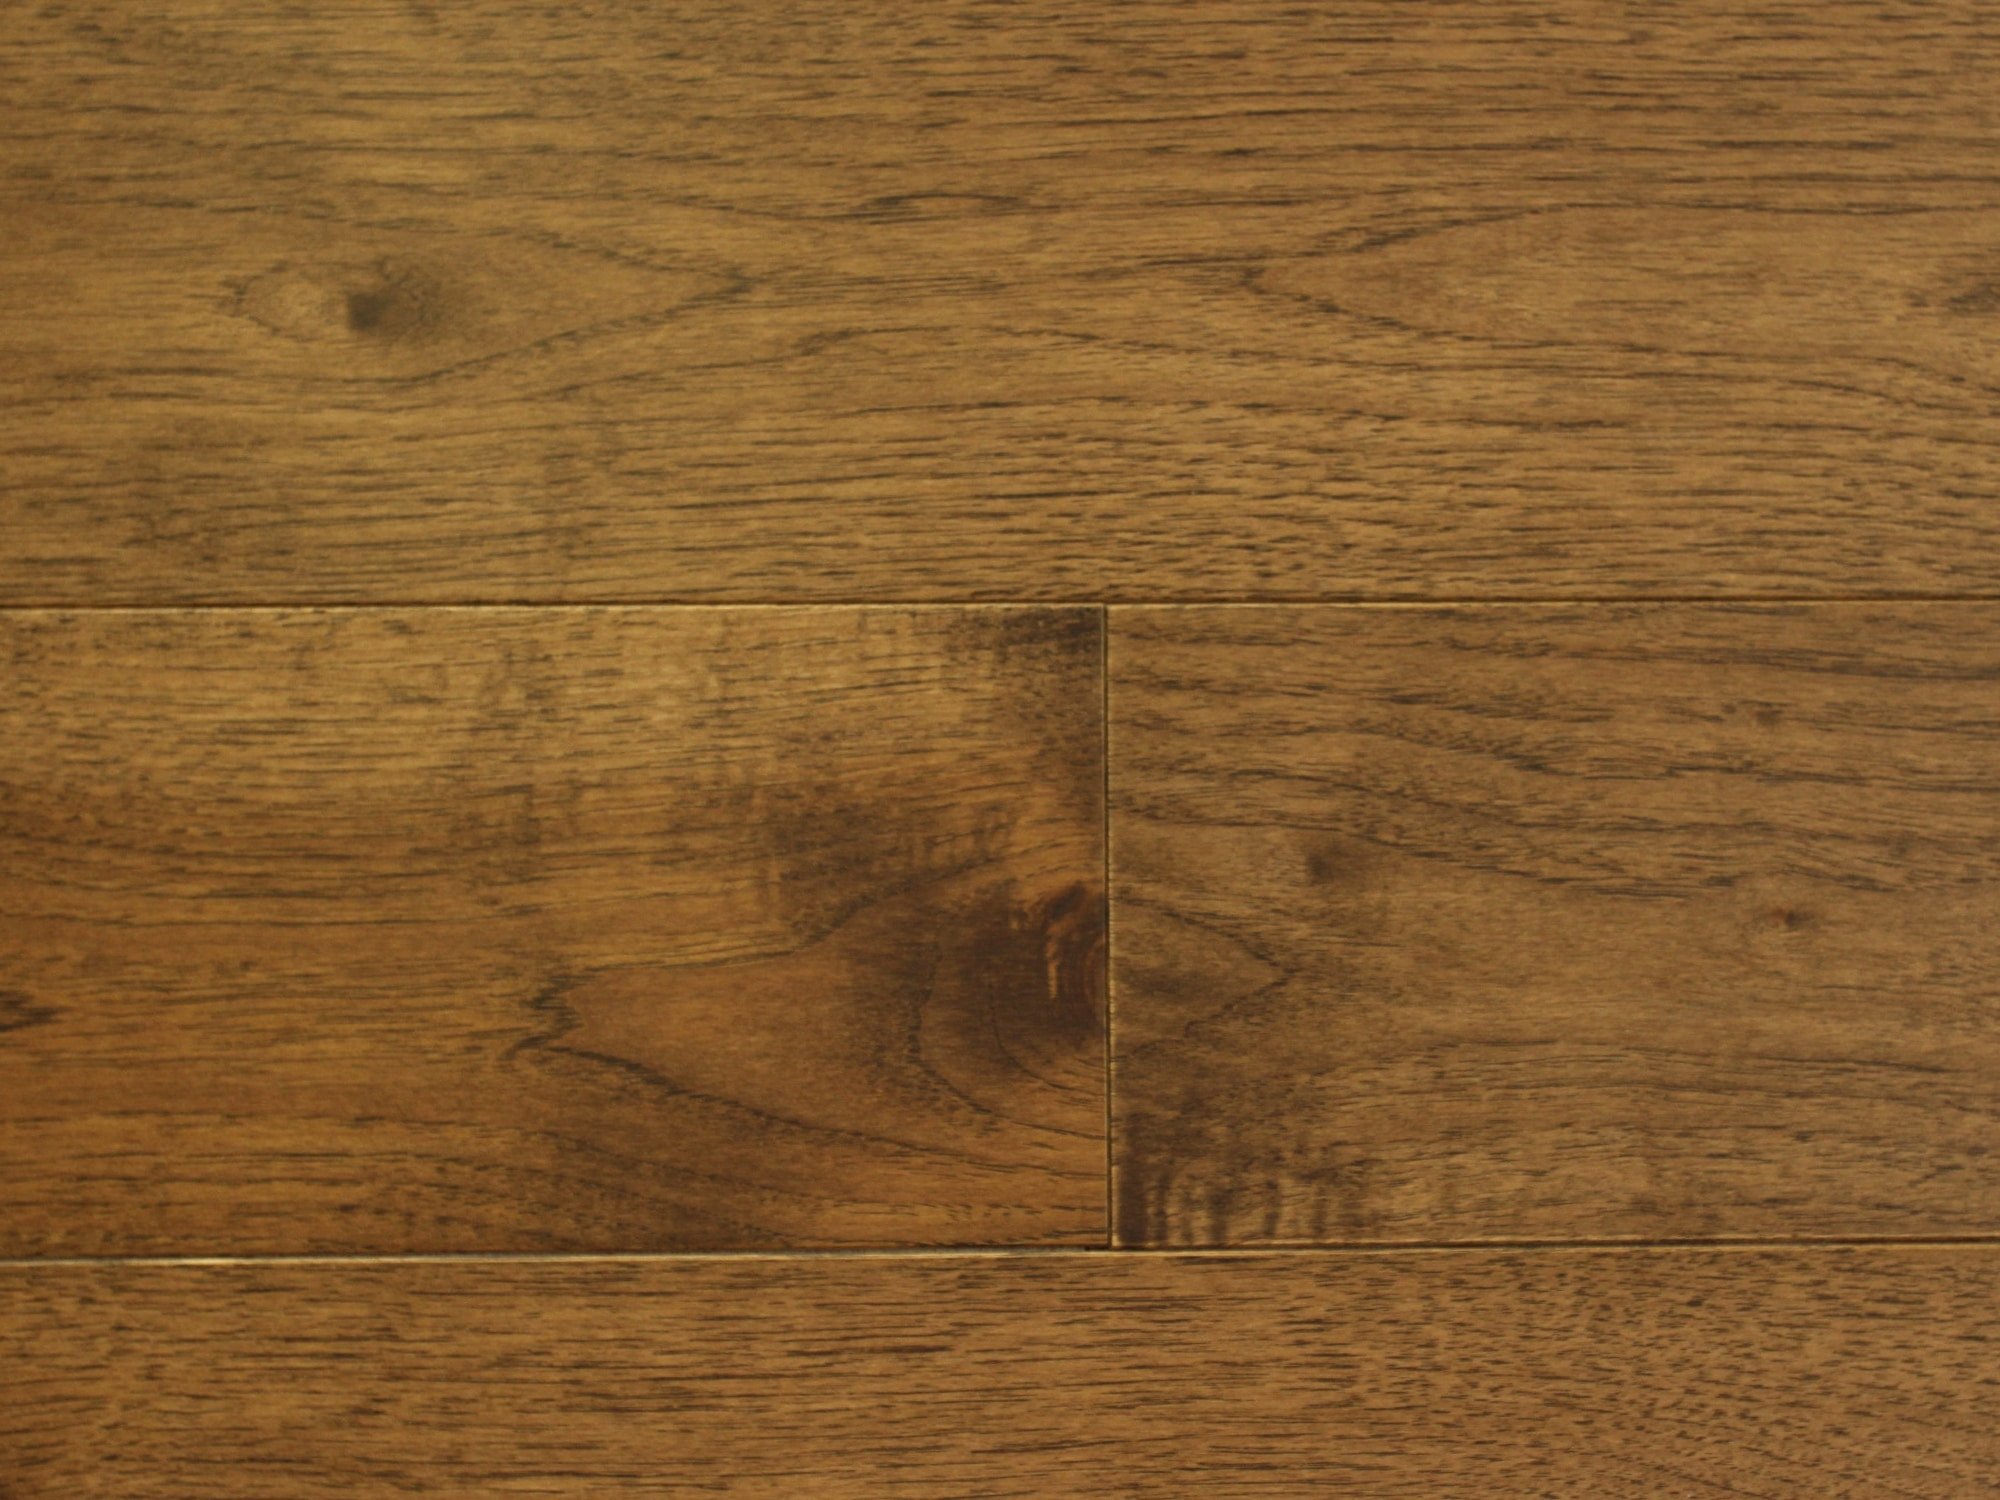 hardwood flooring tulsa ok of blakely flooring behr aged beige perfect griege color dream home floor with blakely flooring top 5 differences between laminate and hardwood flooring